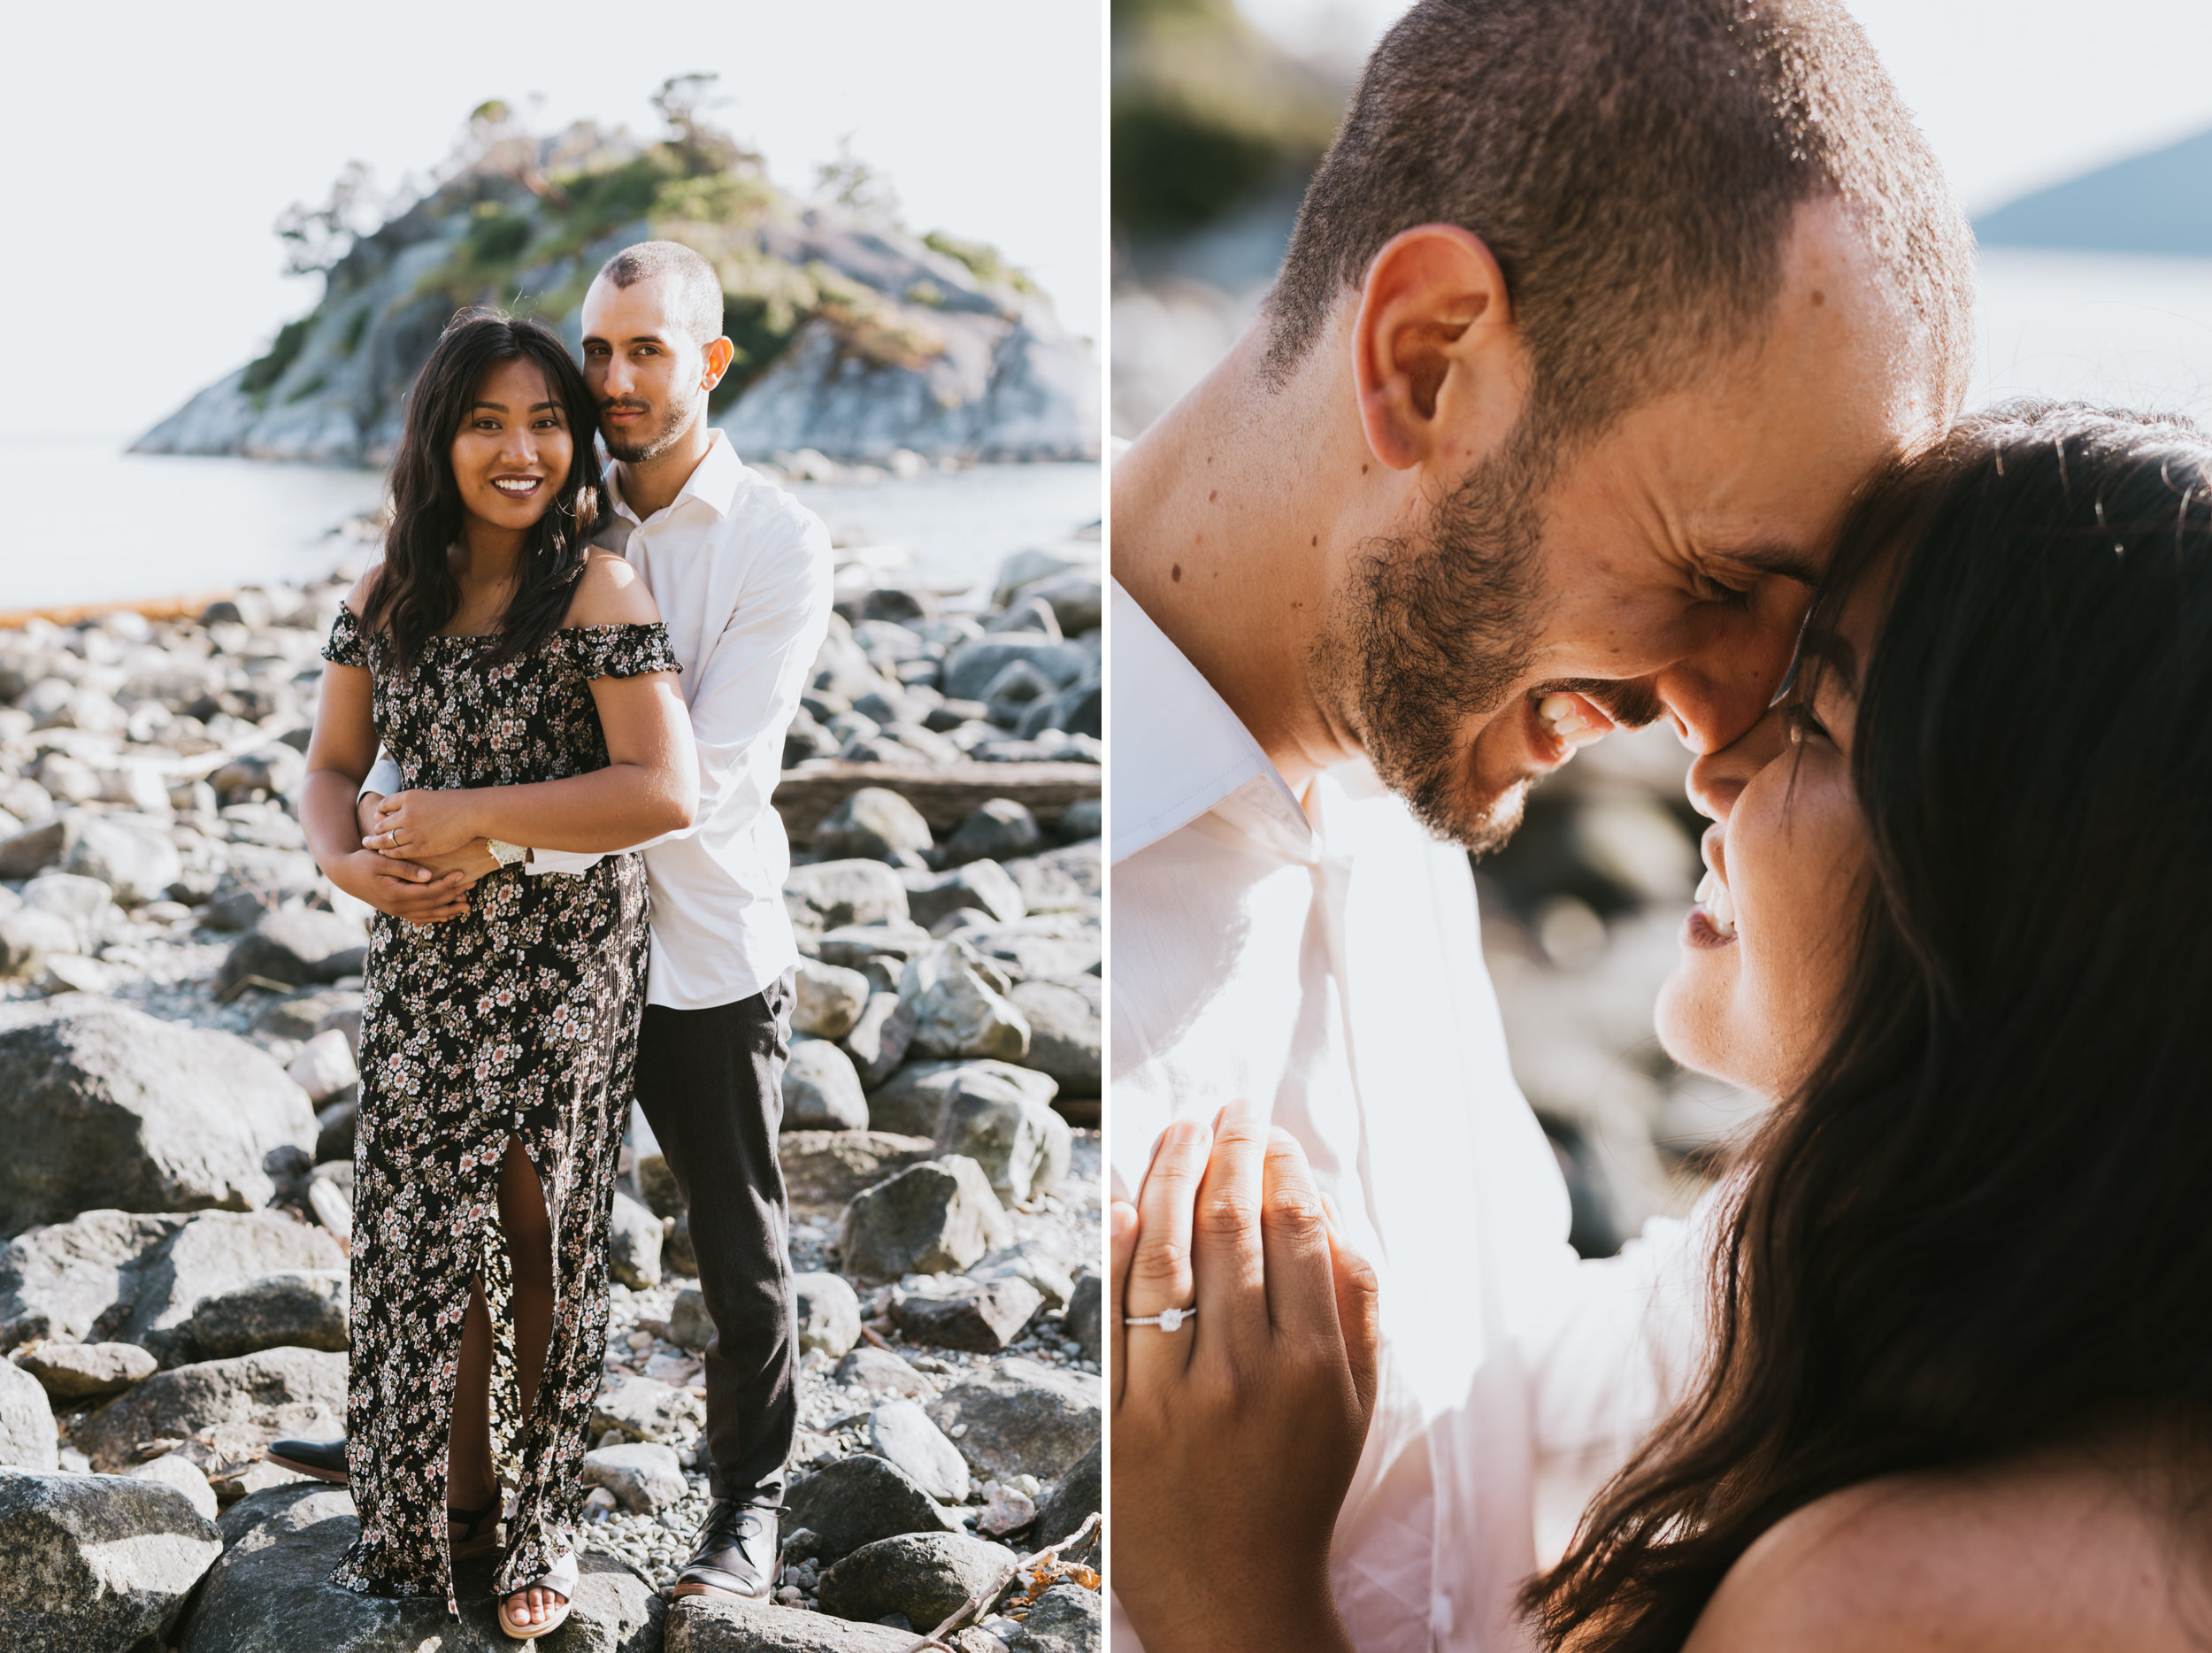 oliver-rabanes-vancouver-surrey-whytecliff-park-proposal-engagement-photography-30.jpg